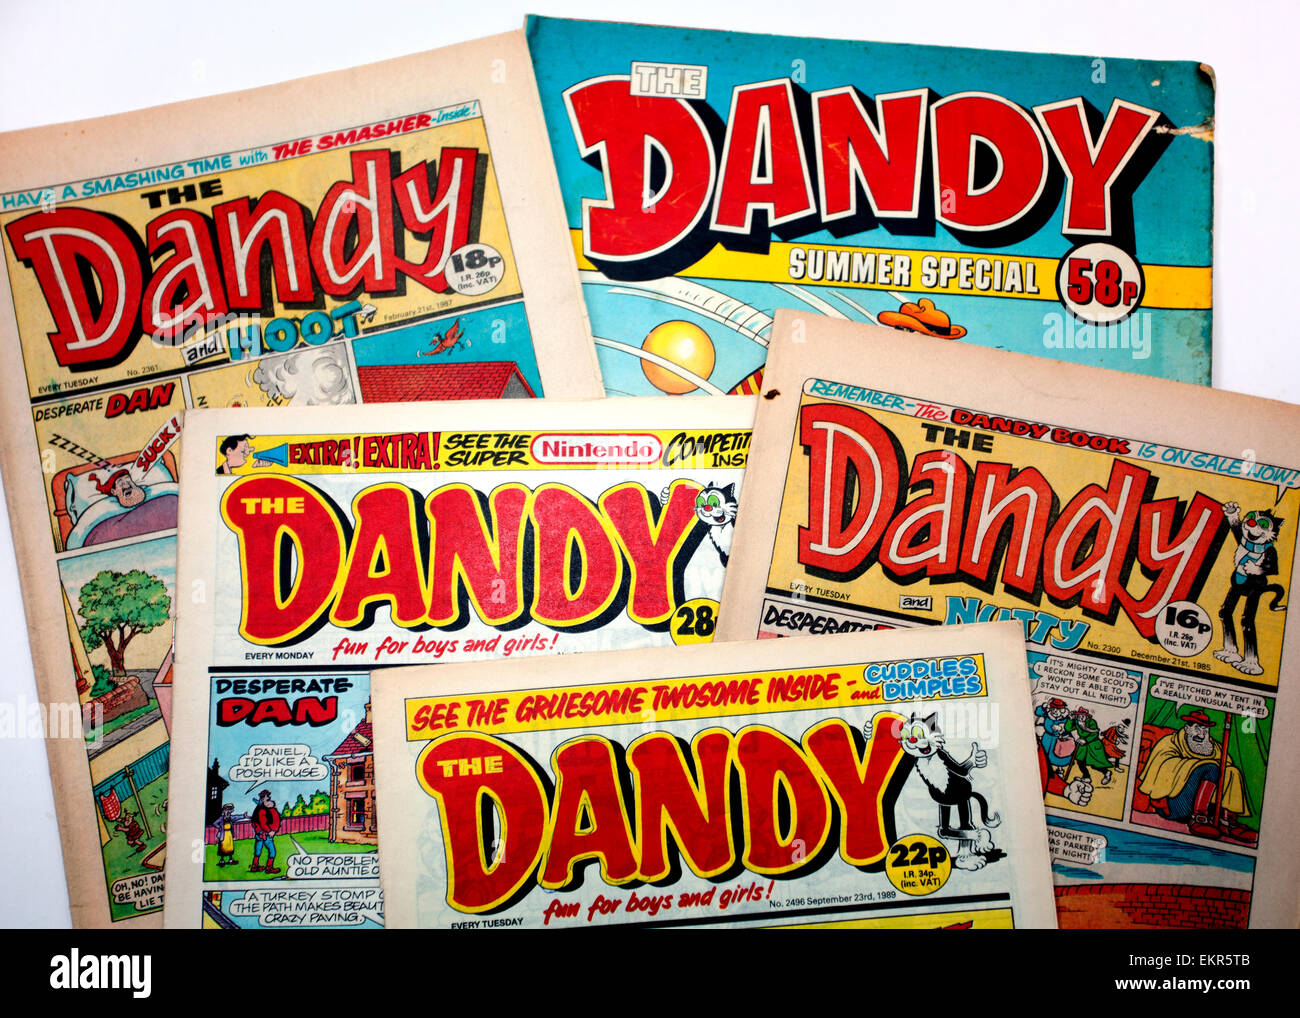 Copies of The Dandy comic from the 1980s, London - Stock Image